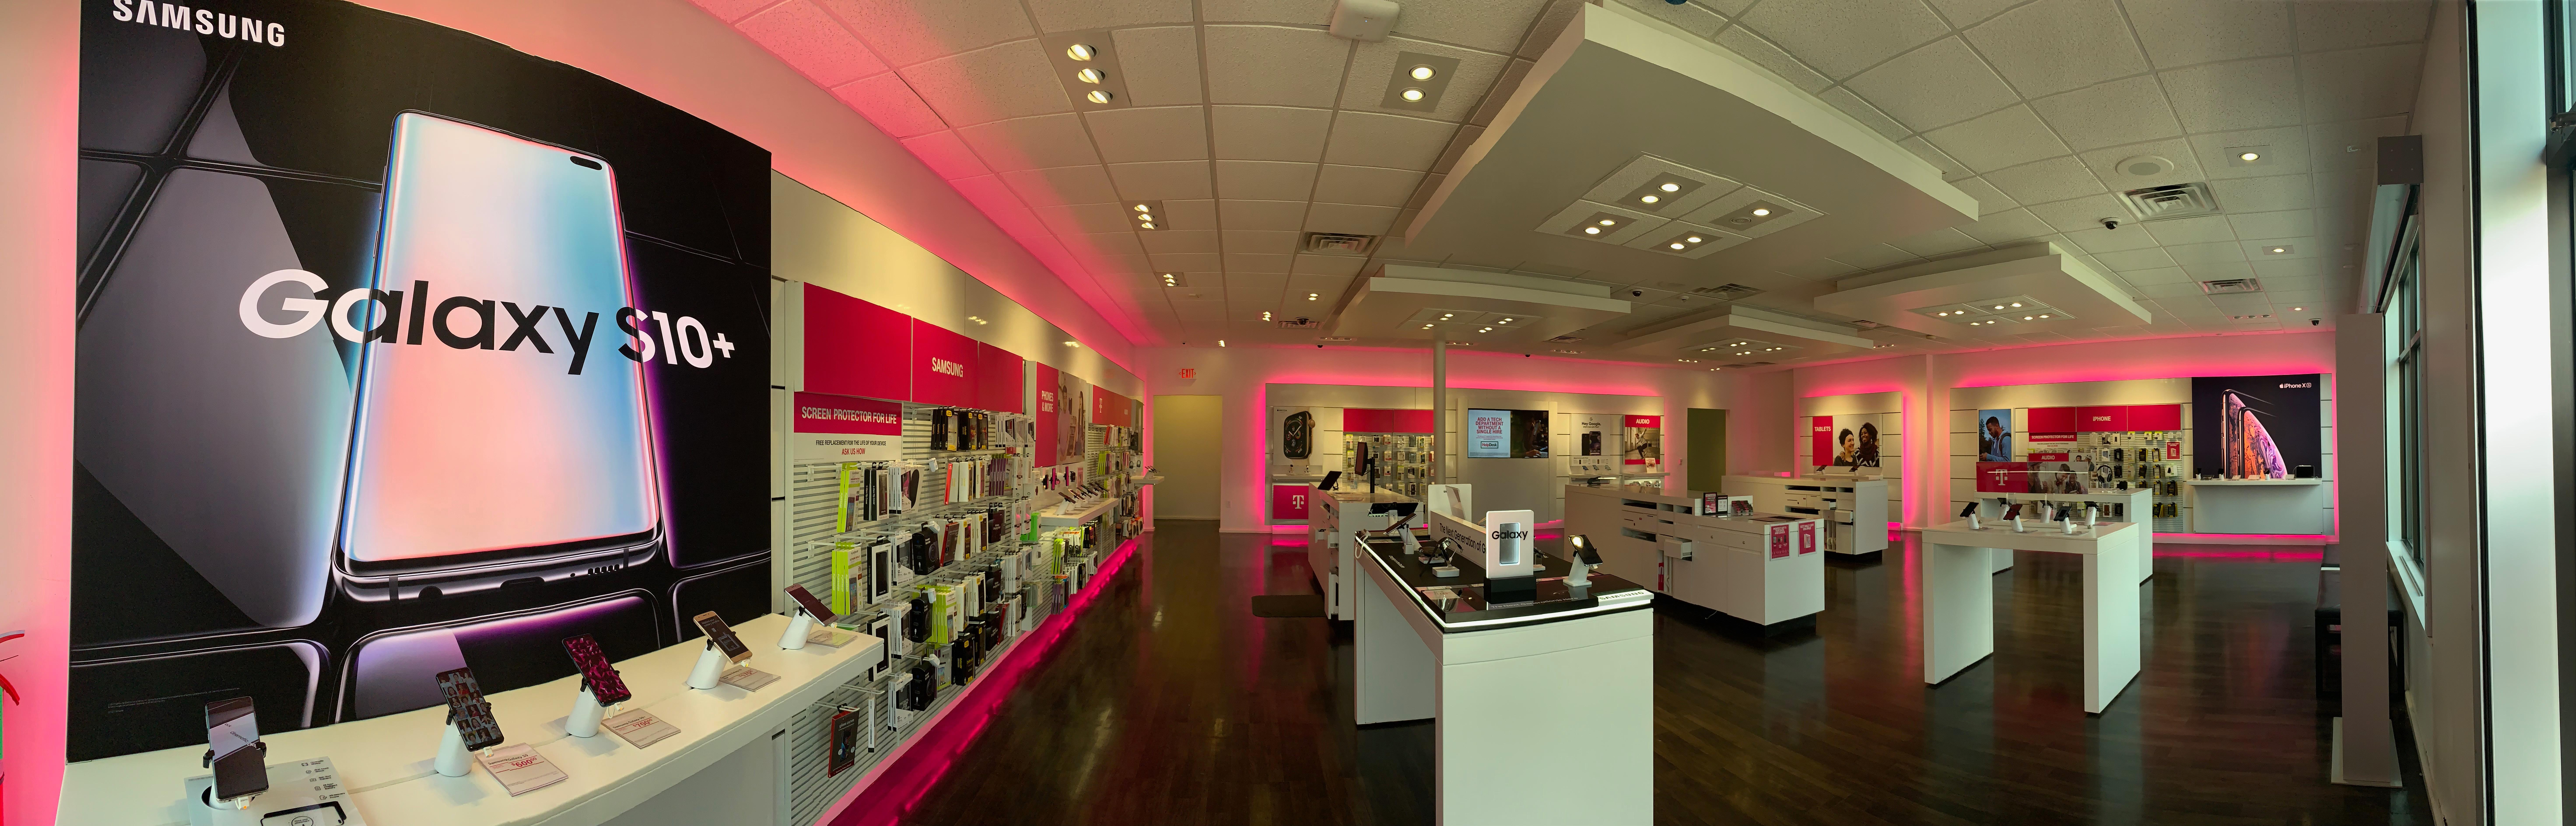 Cell Phones, Plans, and Accessories at T-Mobile 2021 W ... on highway 70 missouri map, highway 67 missouri map, highway 44 missouri map, highway 79 missouri map, highway 60 missouri map, highway 19 missouri map, ohio indiana kentucky interstate map,